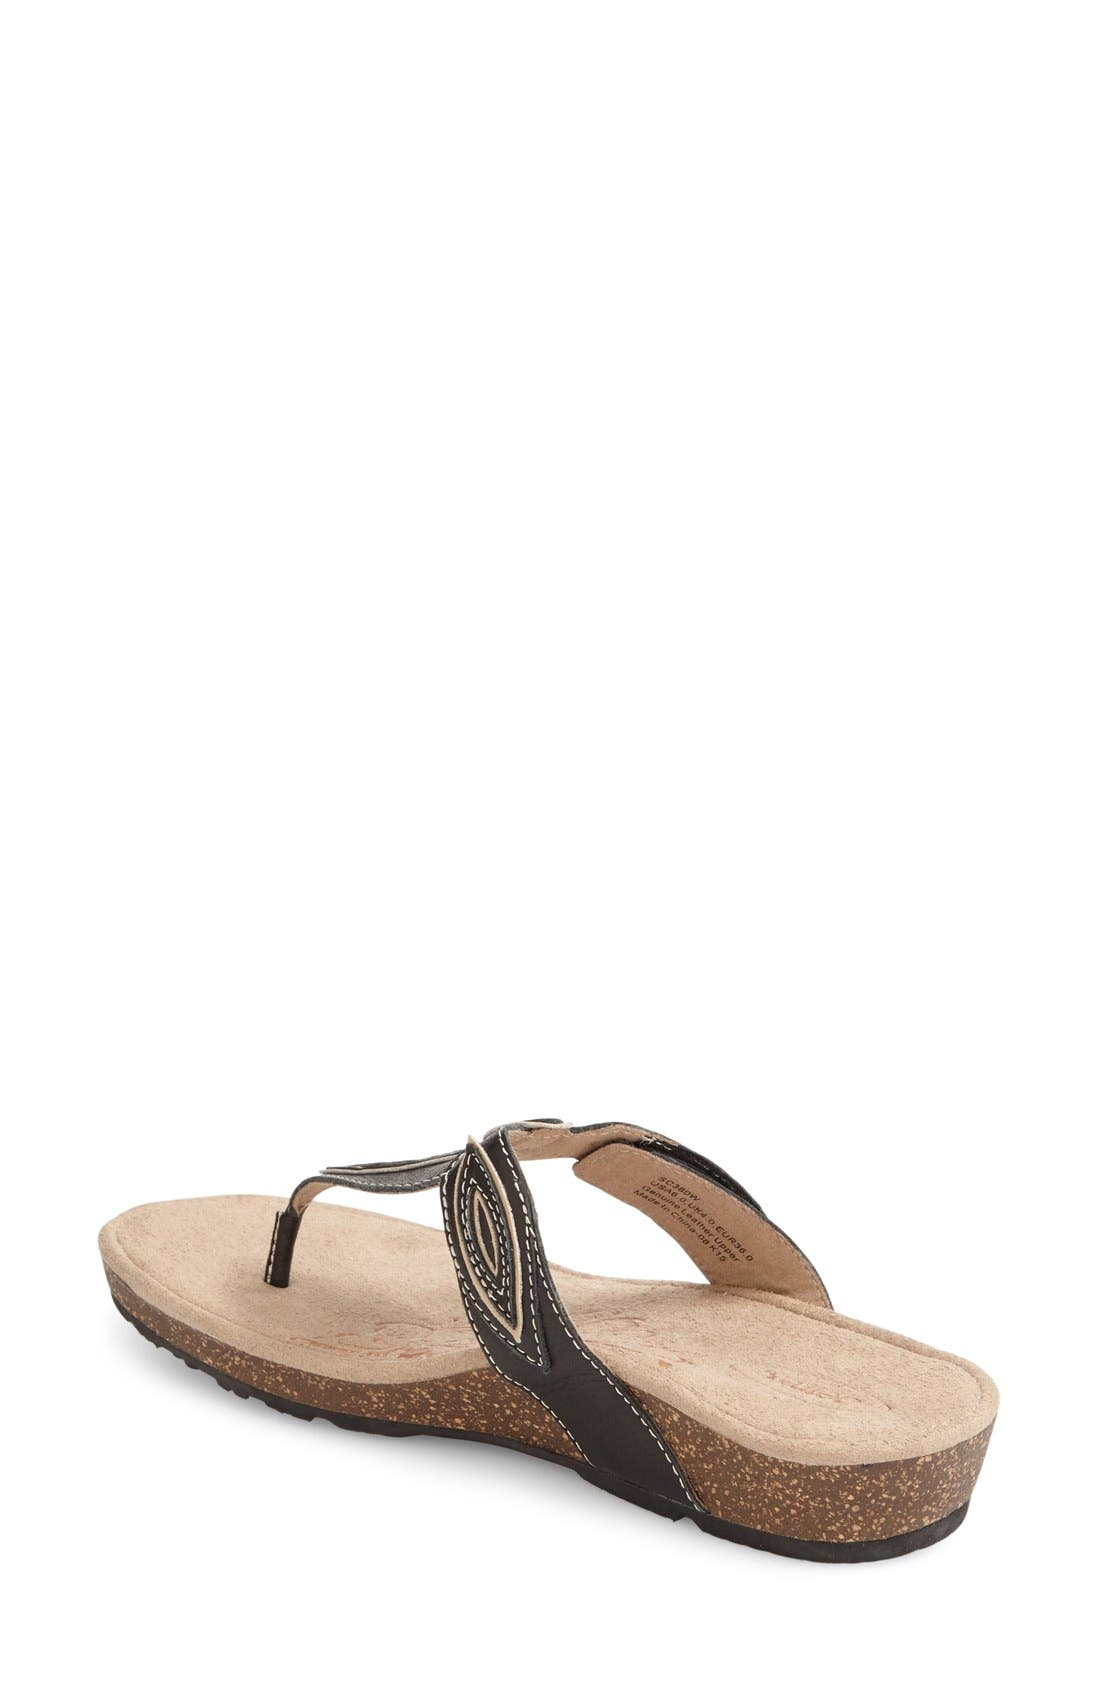 'Terri' Flip Flop,                             Alternate thumbnail 5, color,                             001